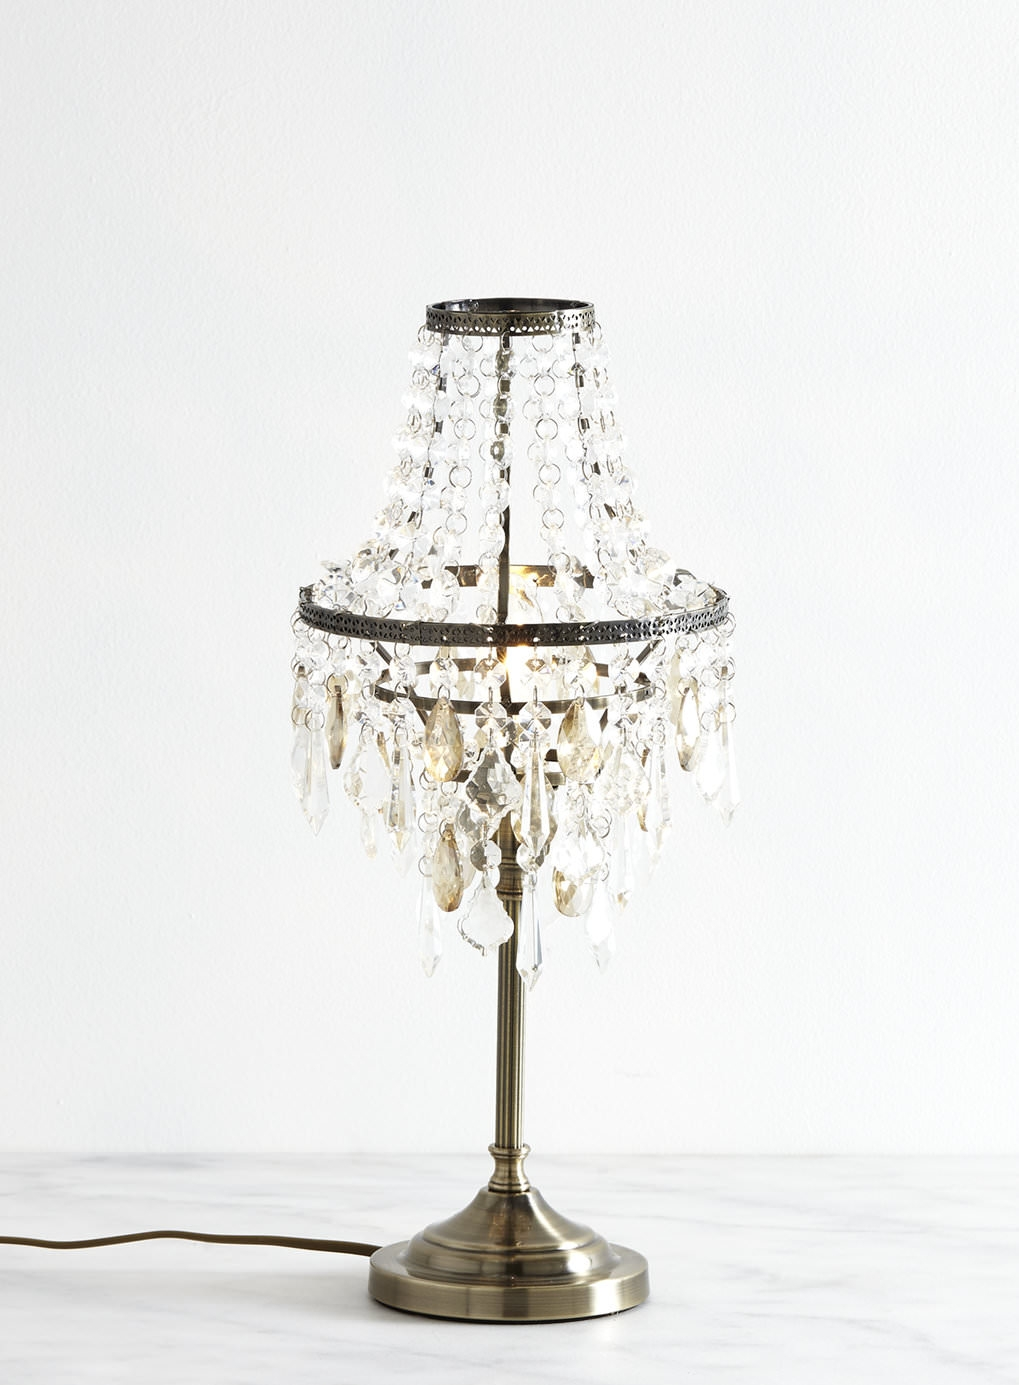 Decorative Chandelier Table Lamp Lighting Fixtures All In One With Regard To Table Chandeliers (#10 of 12)